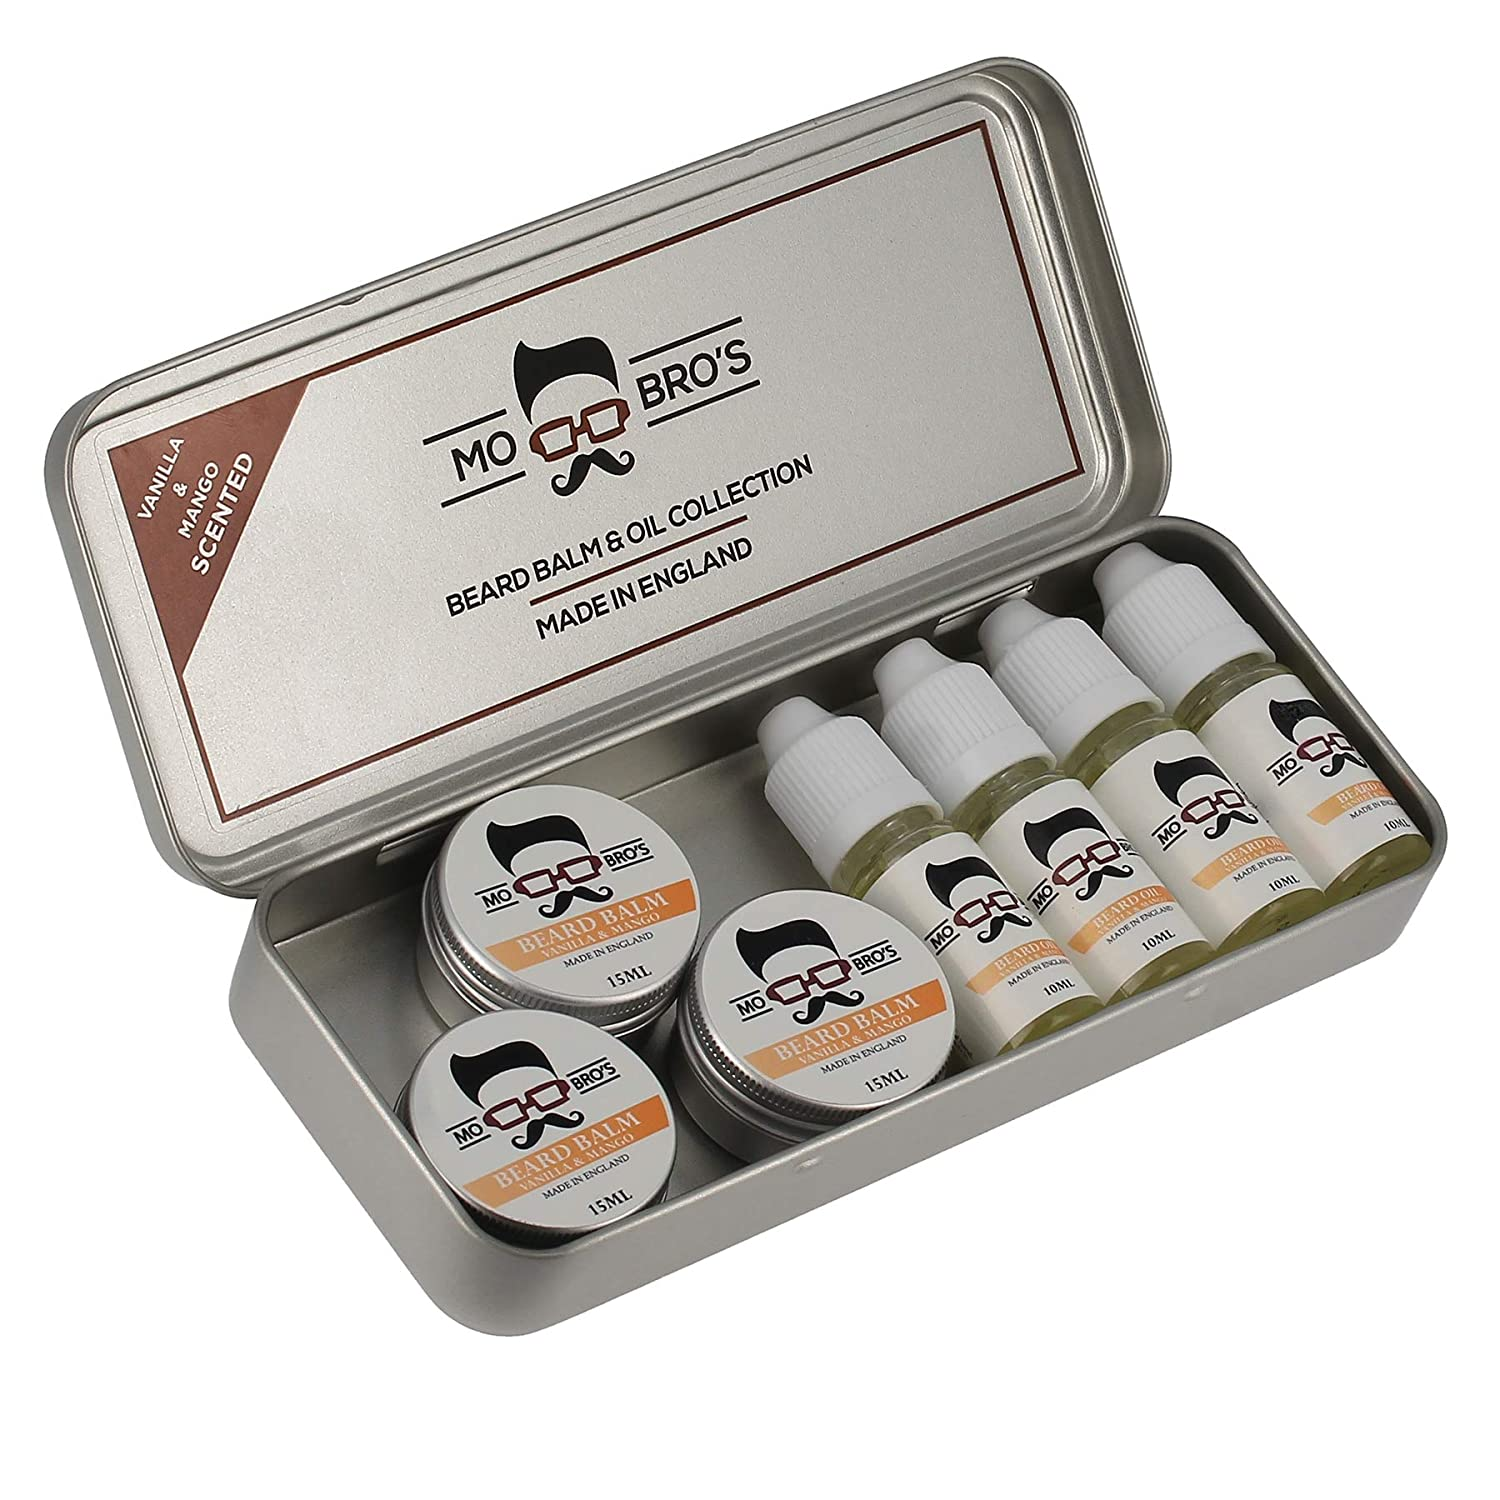 Mo Bro's Beard Balm & Oil Kit (Summer Spice) Mo Bro's